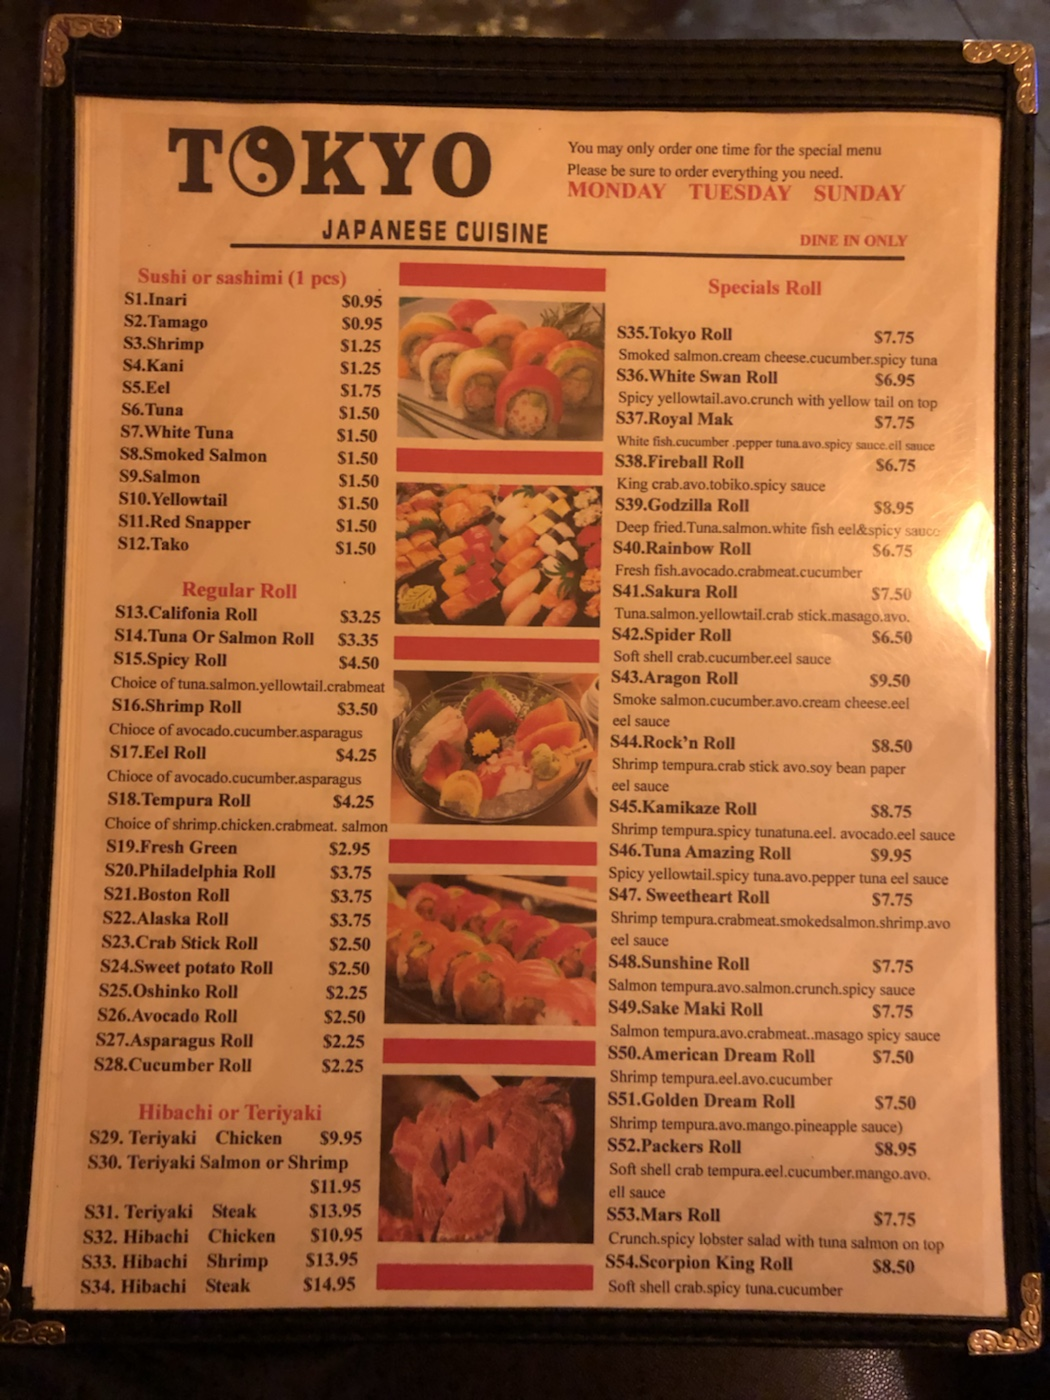 Yes, there's still half-price sushi at Tokyo Japanese Cuisine